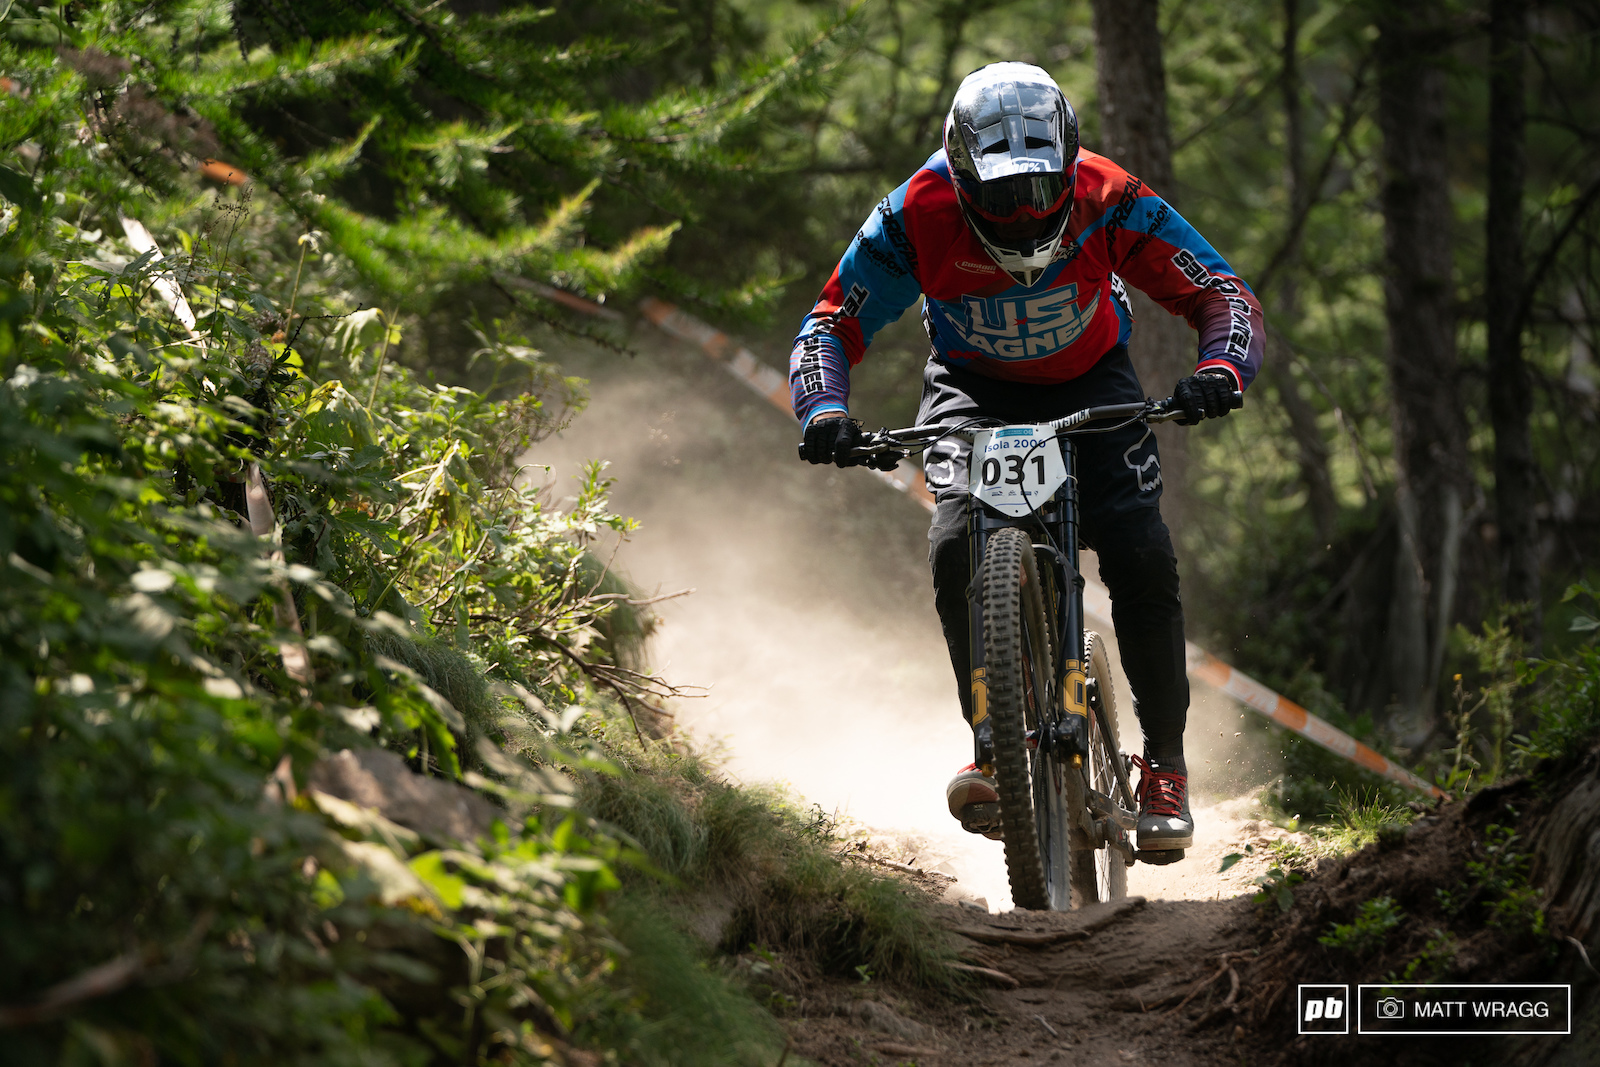 JP Bruni had a better day than his son taking home the win in the master 50 category.